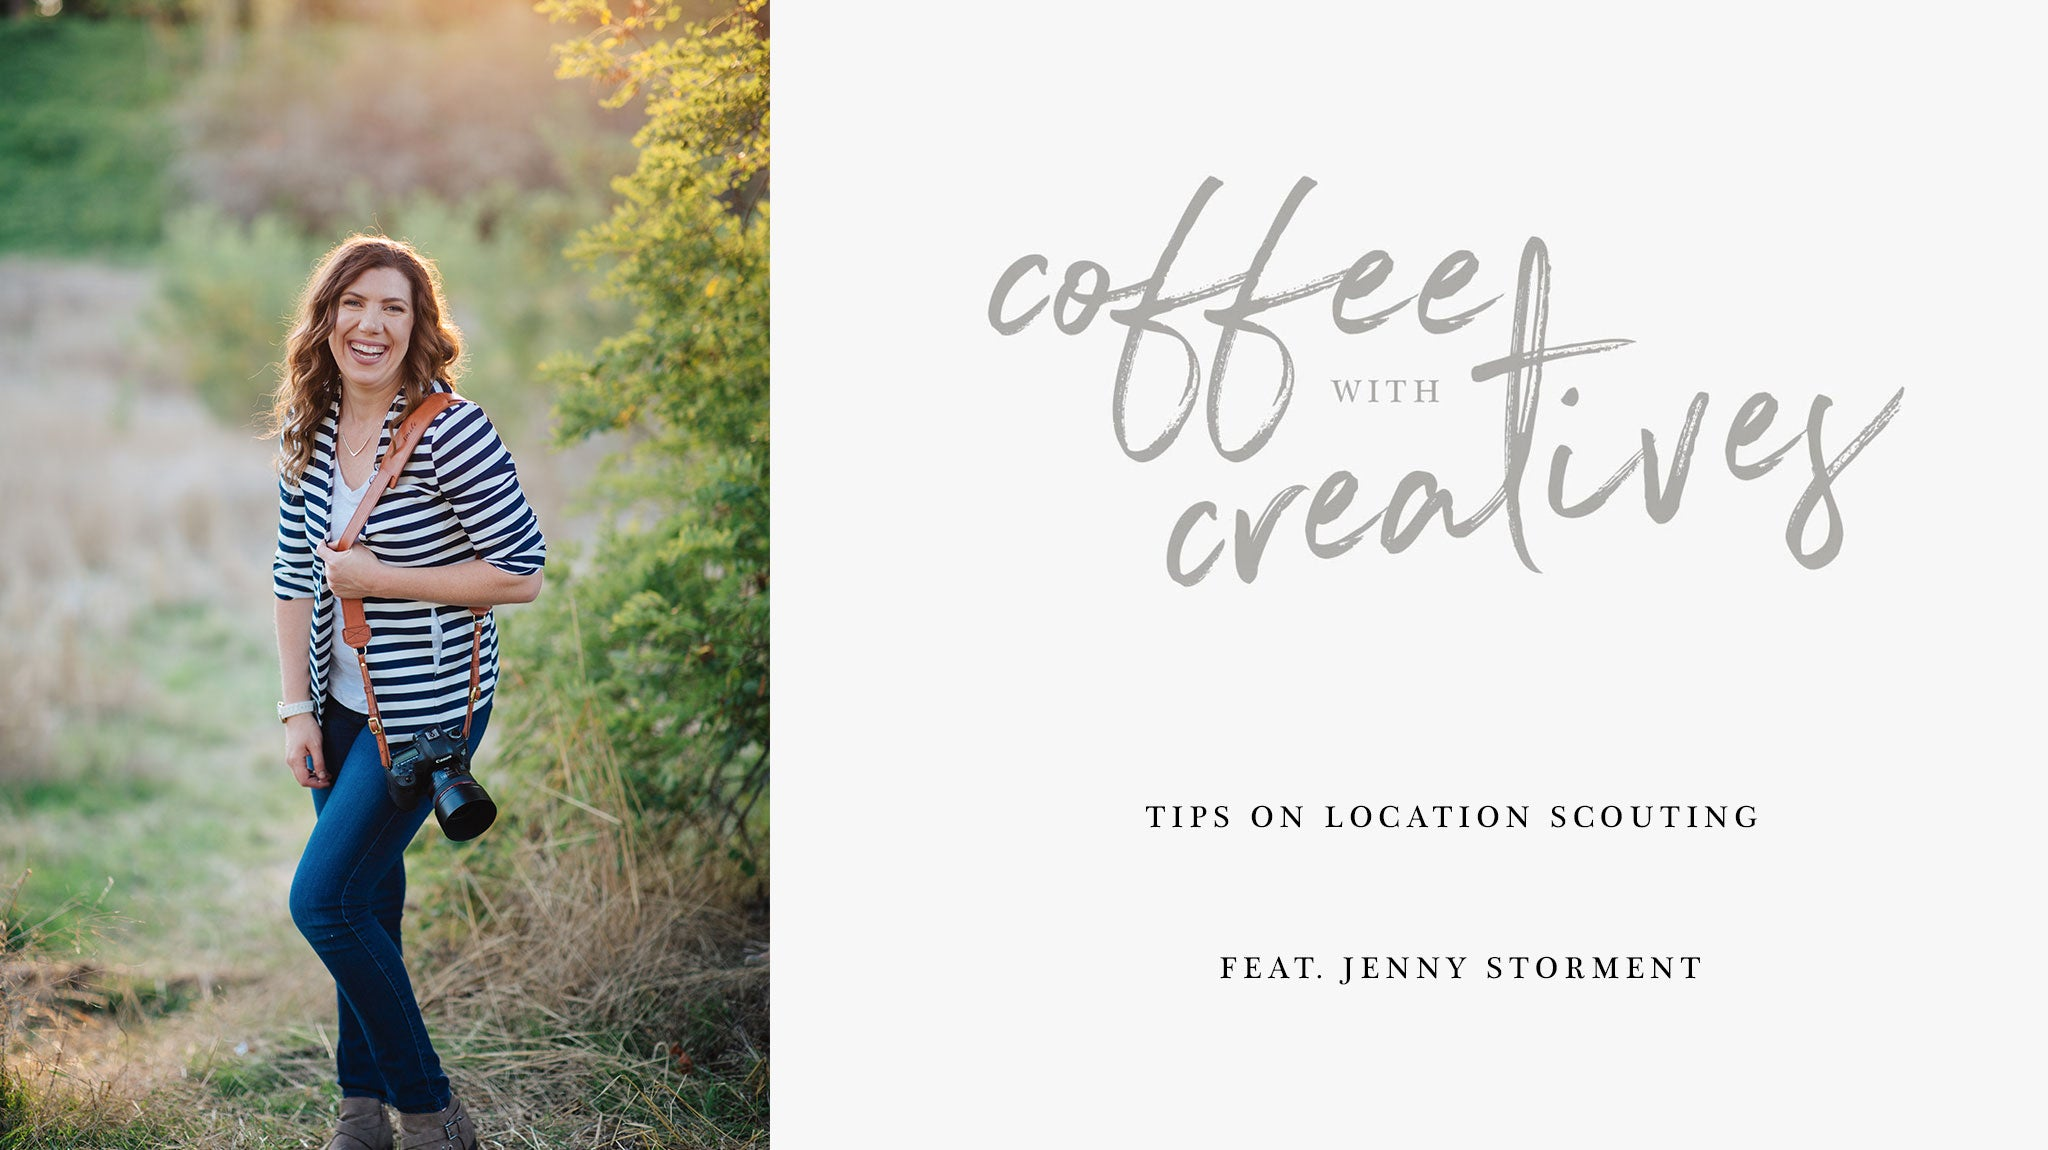 Professional PNW wedding and portrait photographer, Jenny Storment, shares insight on location scouting for her photography sessions.